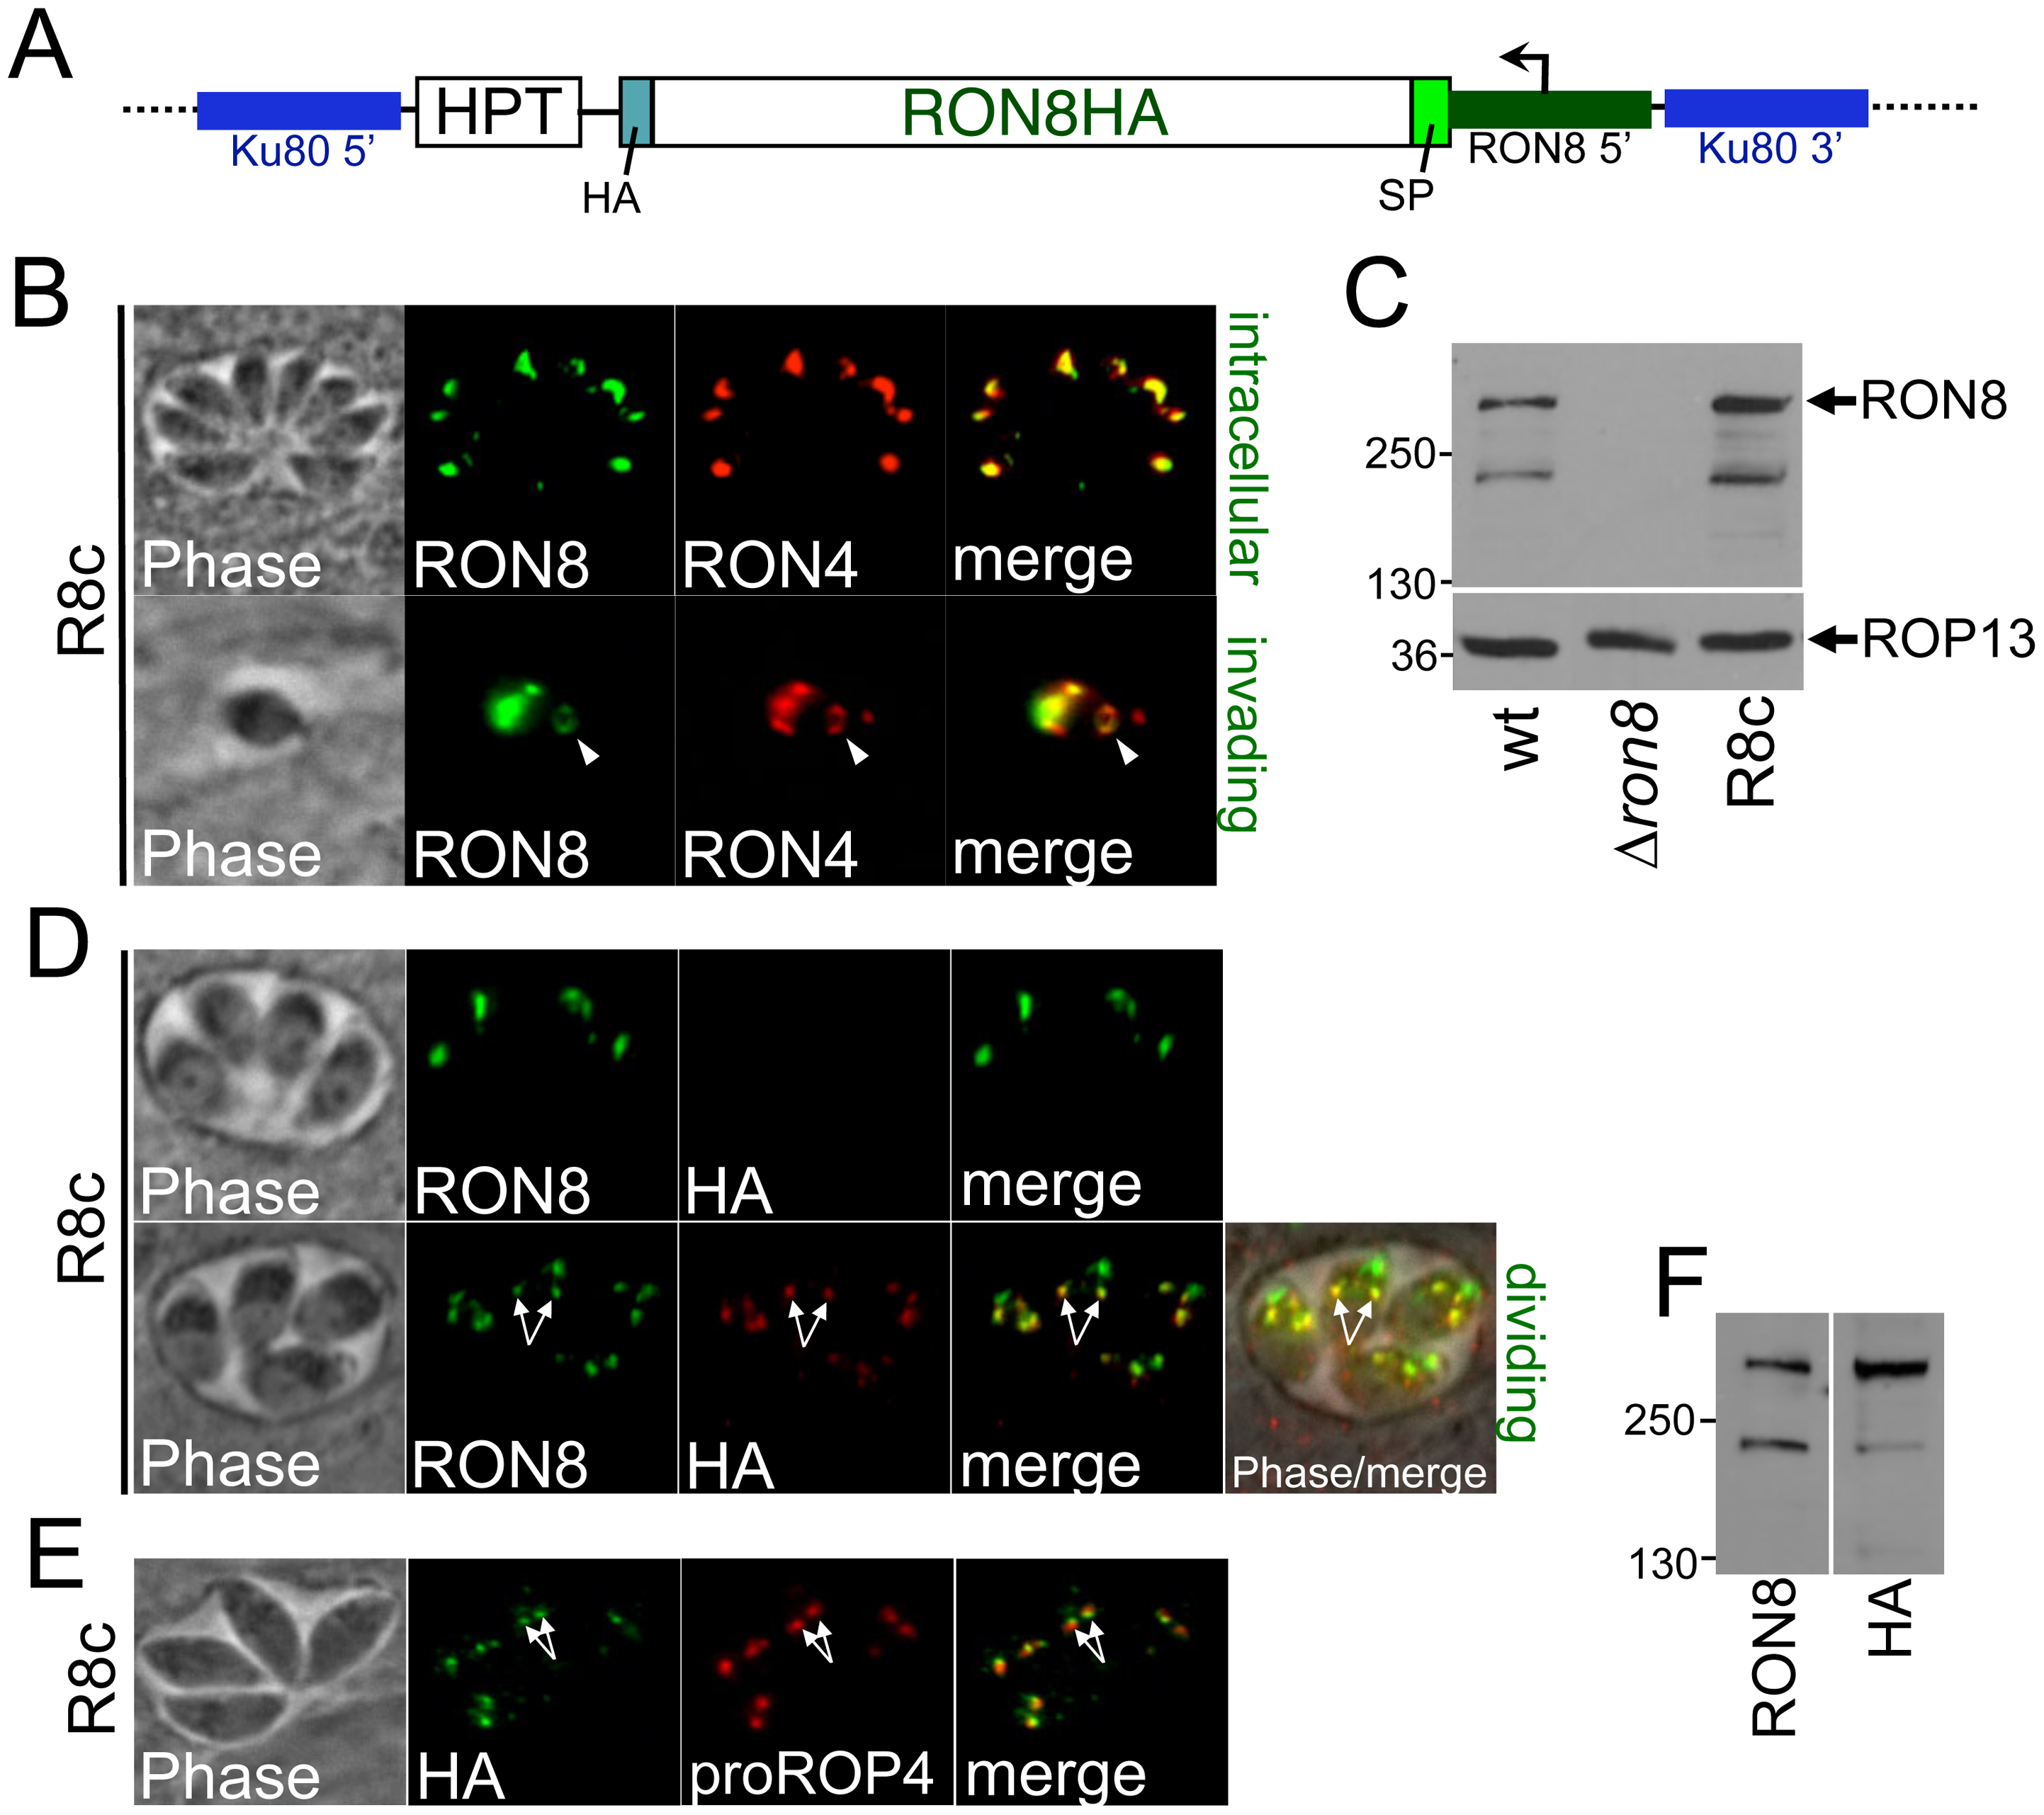 Complementation of <i>RON8</i> by targeting a RON8 expression cassette to the <i>KU80</i> locus.